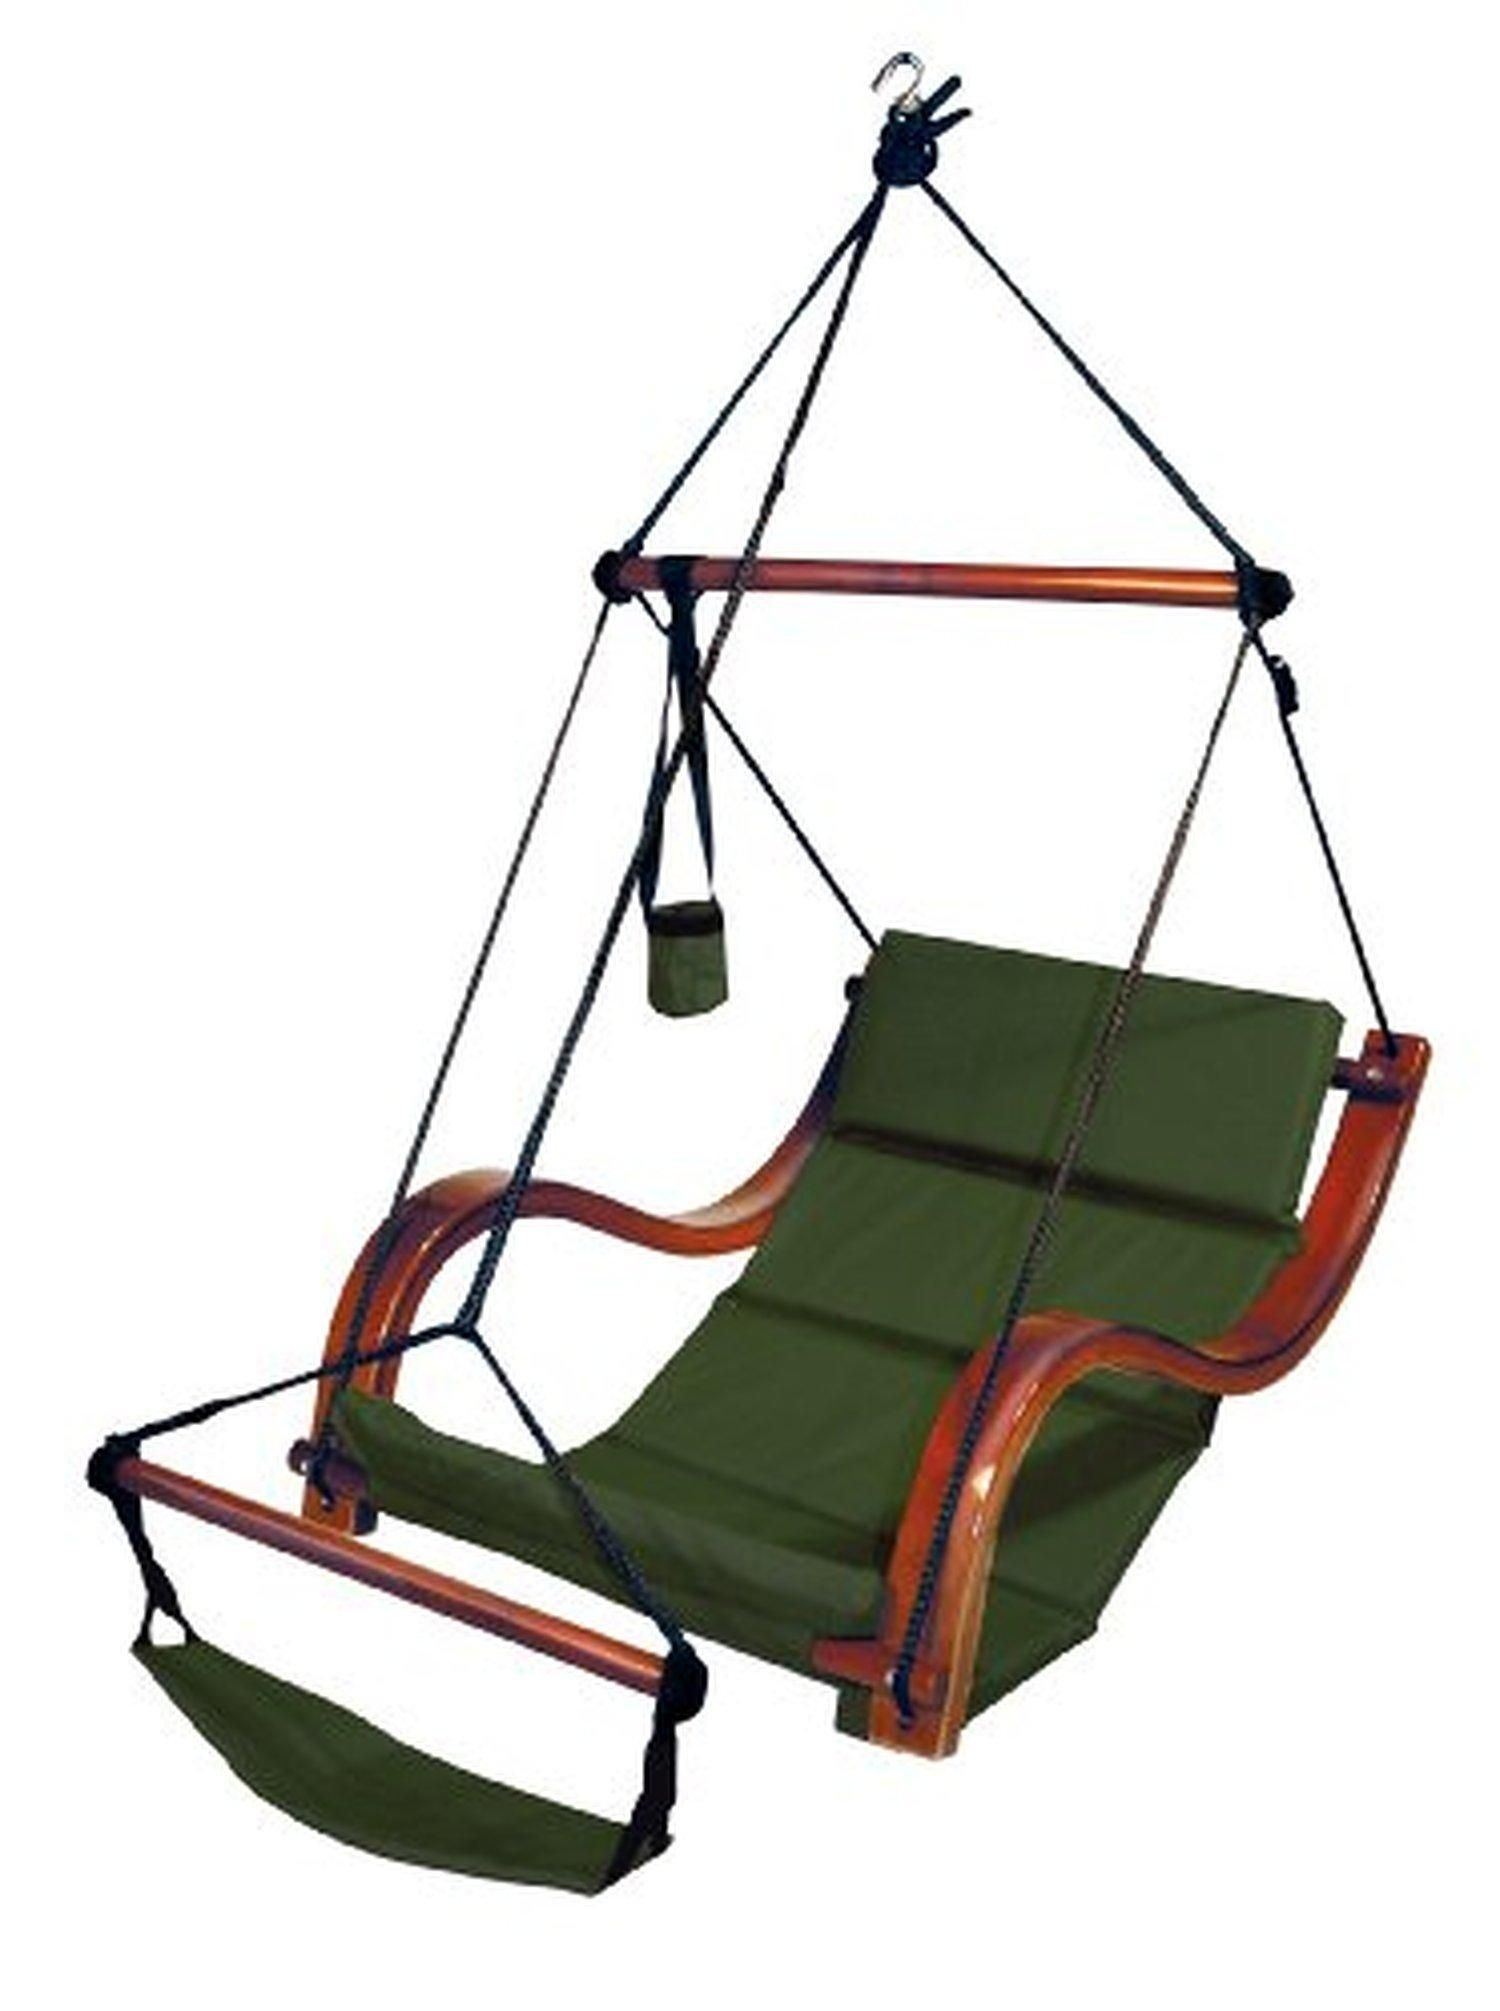 Hammaka nami deluxe hanging hammock lounger chair in green brought